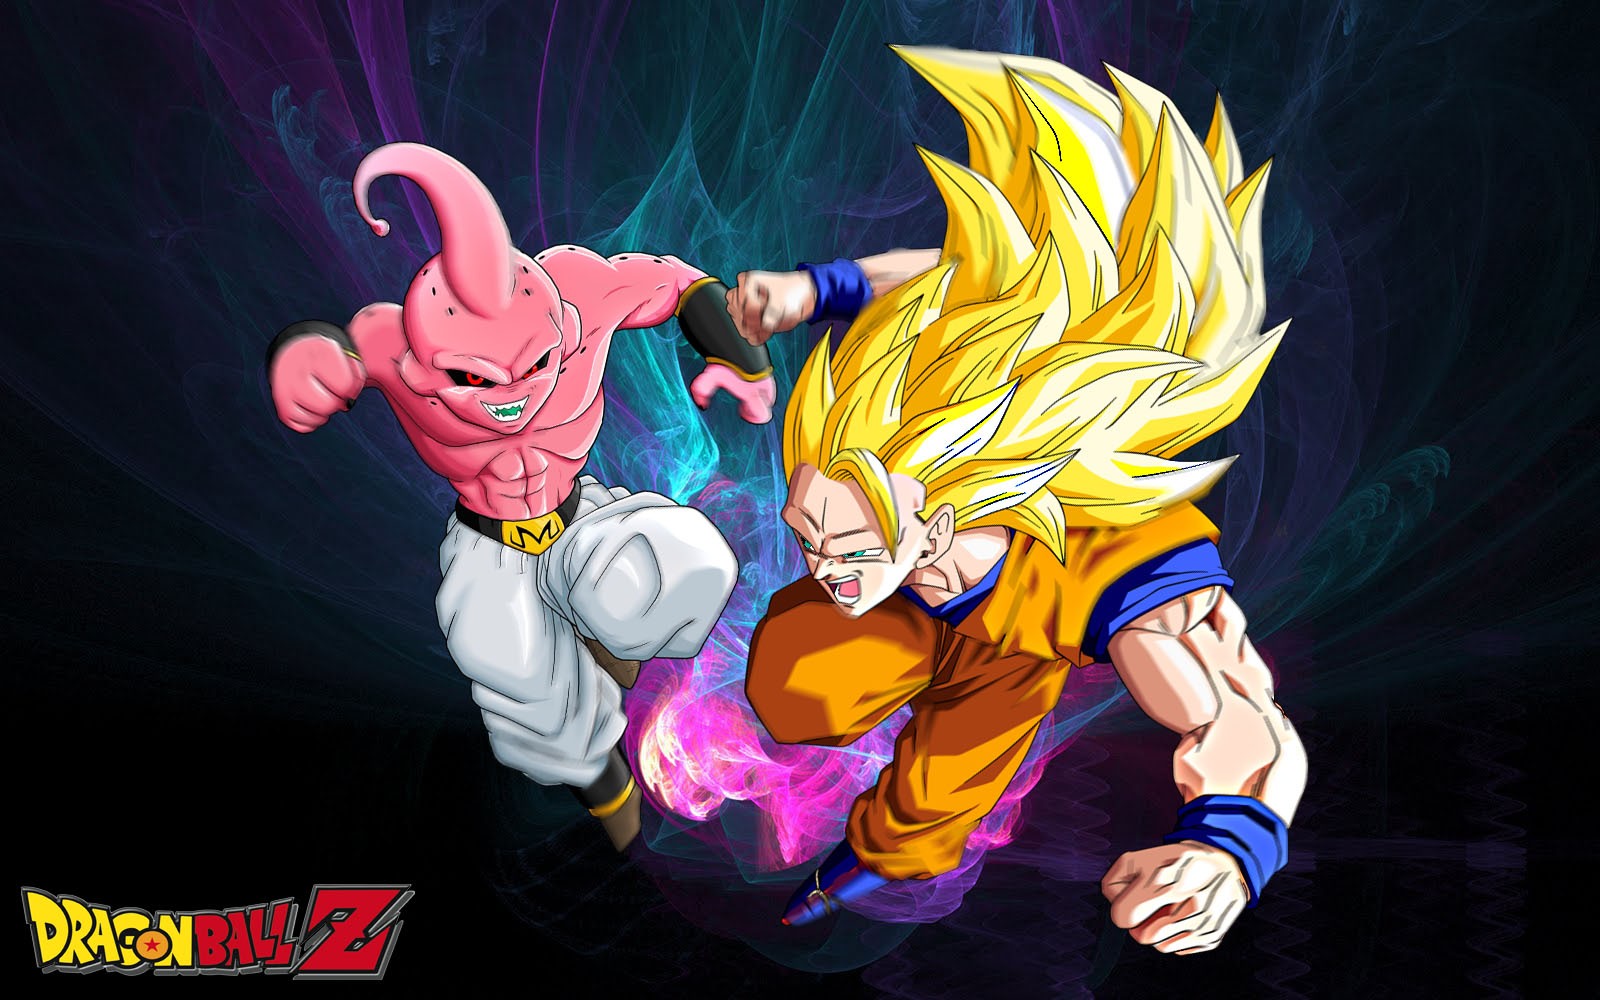 Super Saiyan God Goku Vs Legendary Broly HD Wallpapers 1600x1000